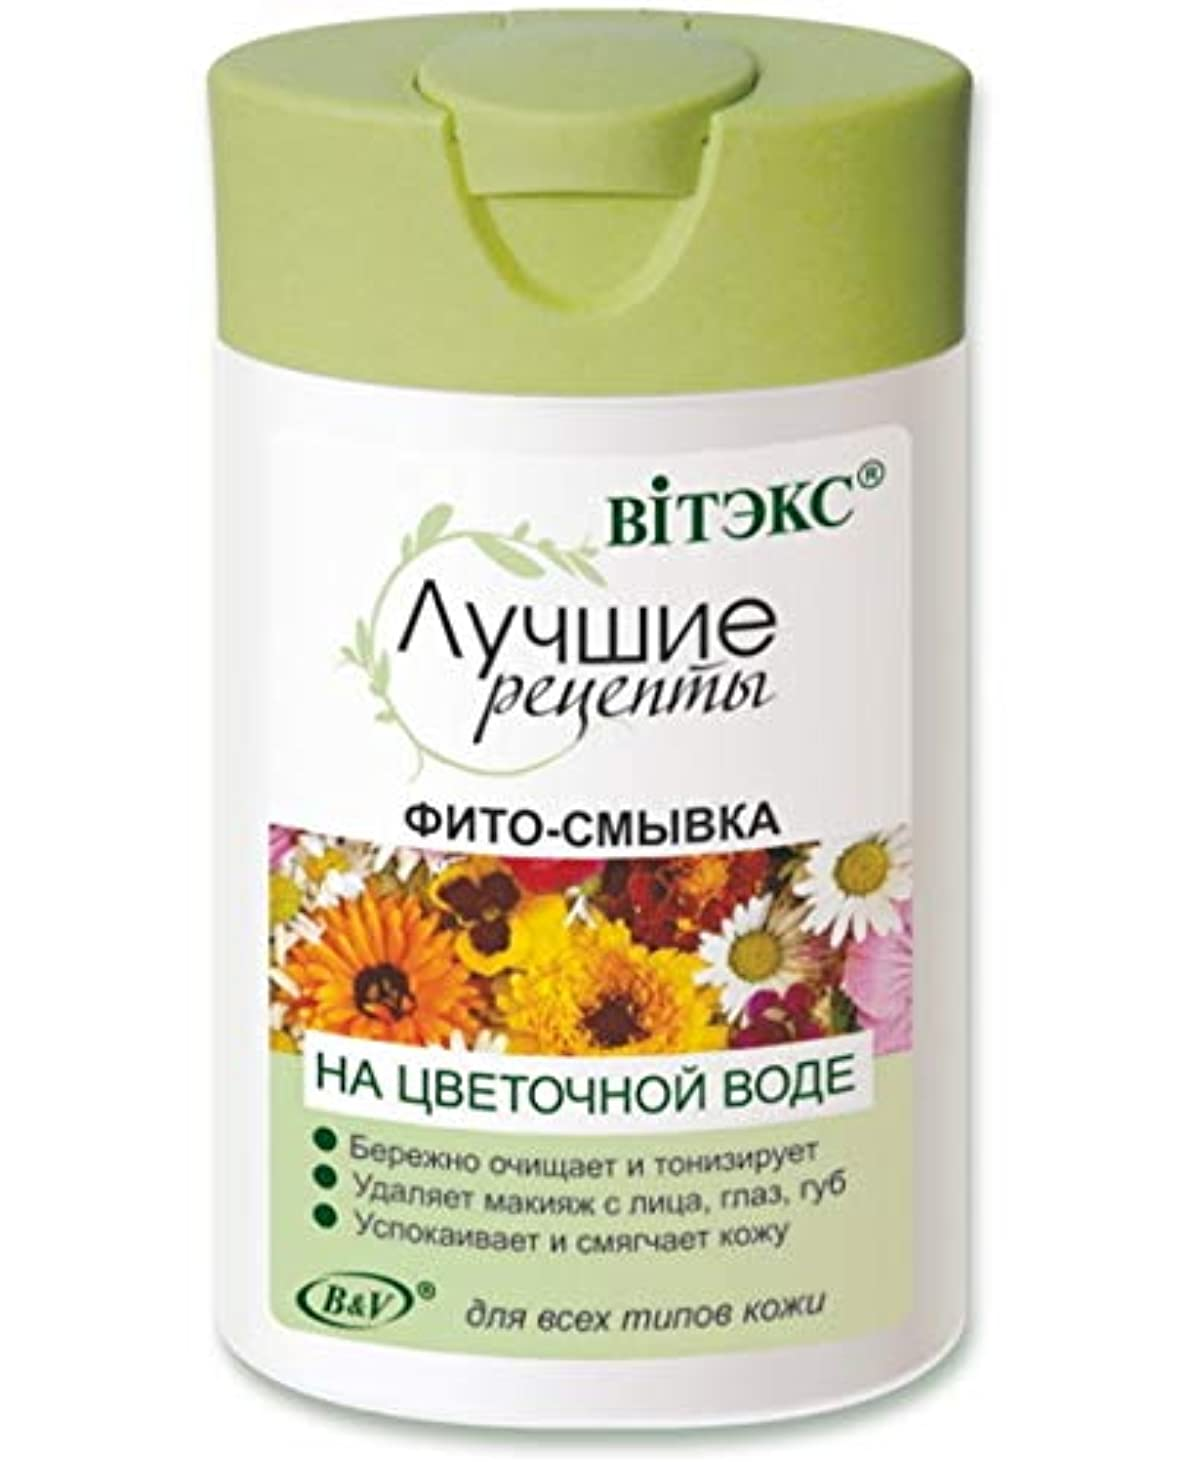 約適格反逆Bielita & Vitex Best Recipes Line | Flower Water Phyto Make-Up Remover for All Skin Types, 145 ml | Cornflower...